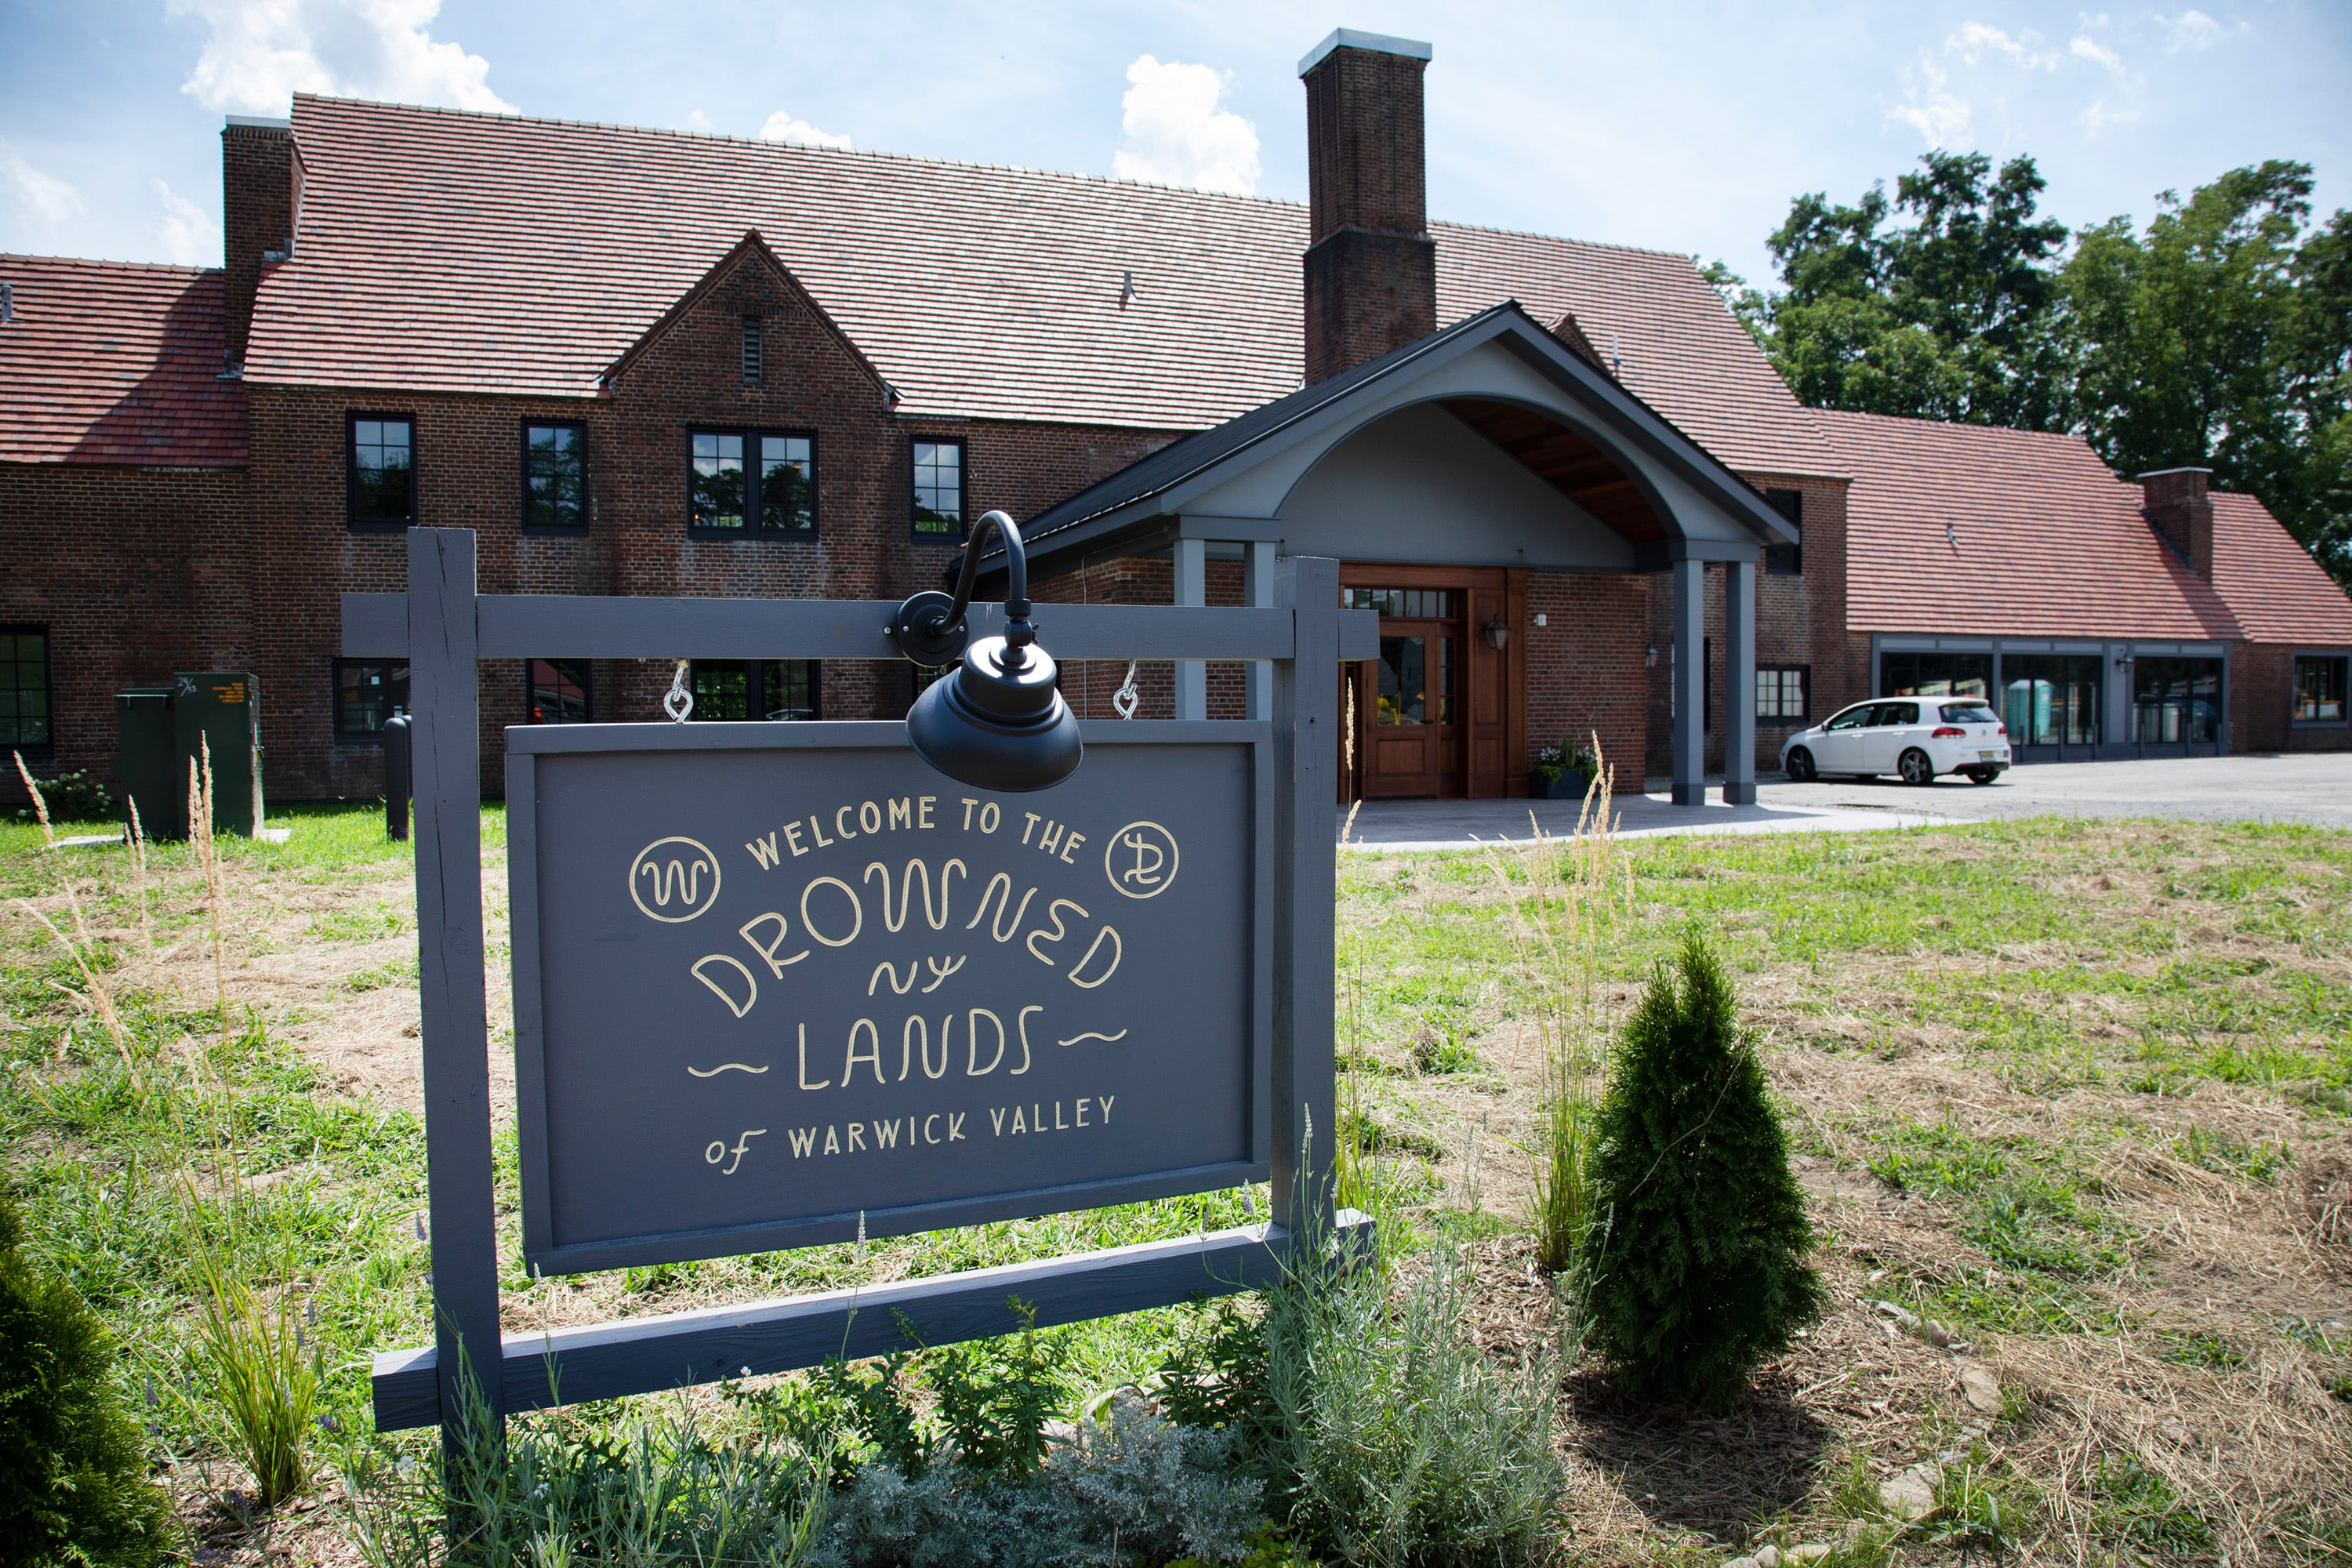 Drowned Lands, a bucolic brewery, opens at former Warwick prison site